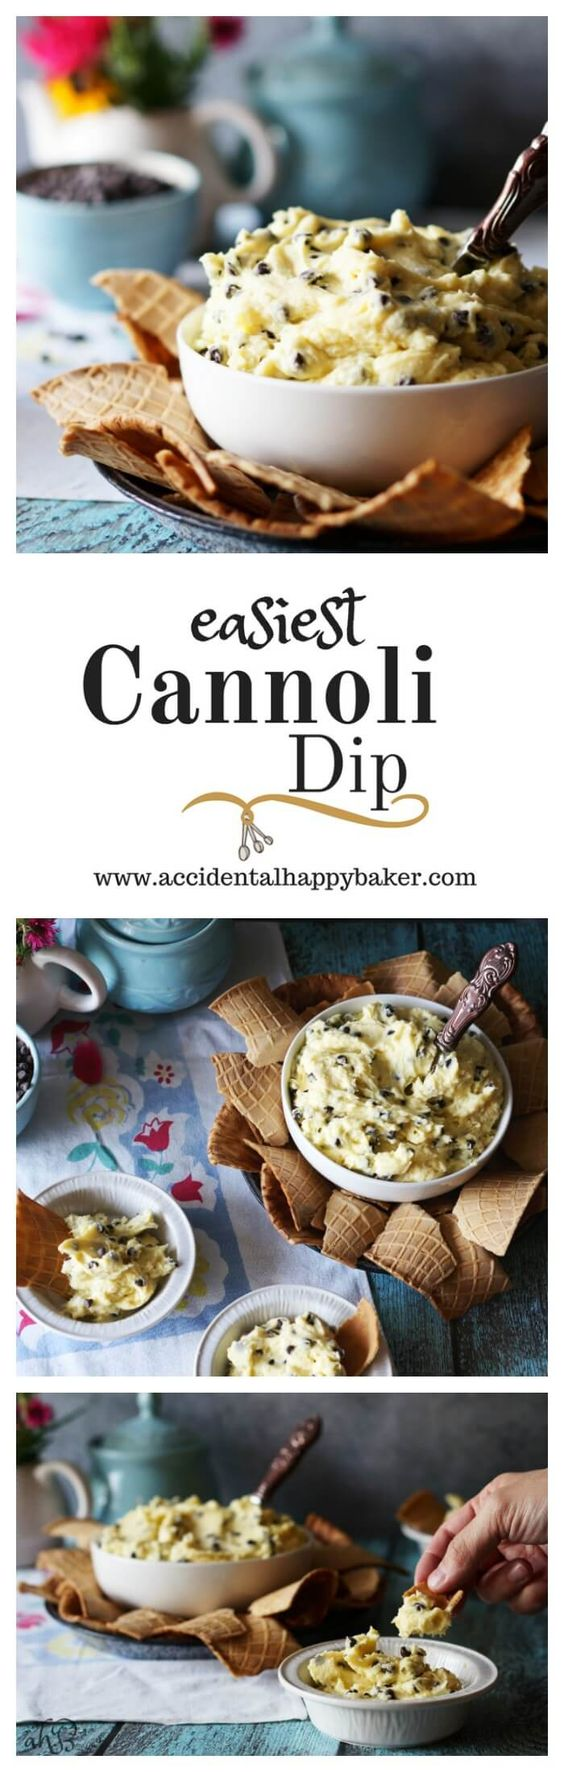 Cannoli Dip,This easy cannoli dip tastes like classic cannoli, goes ...